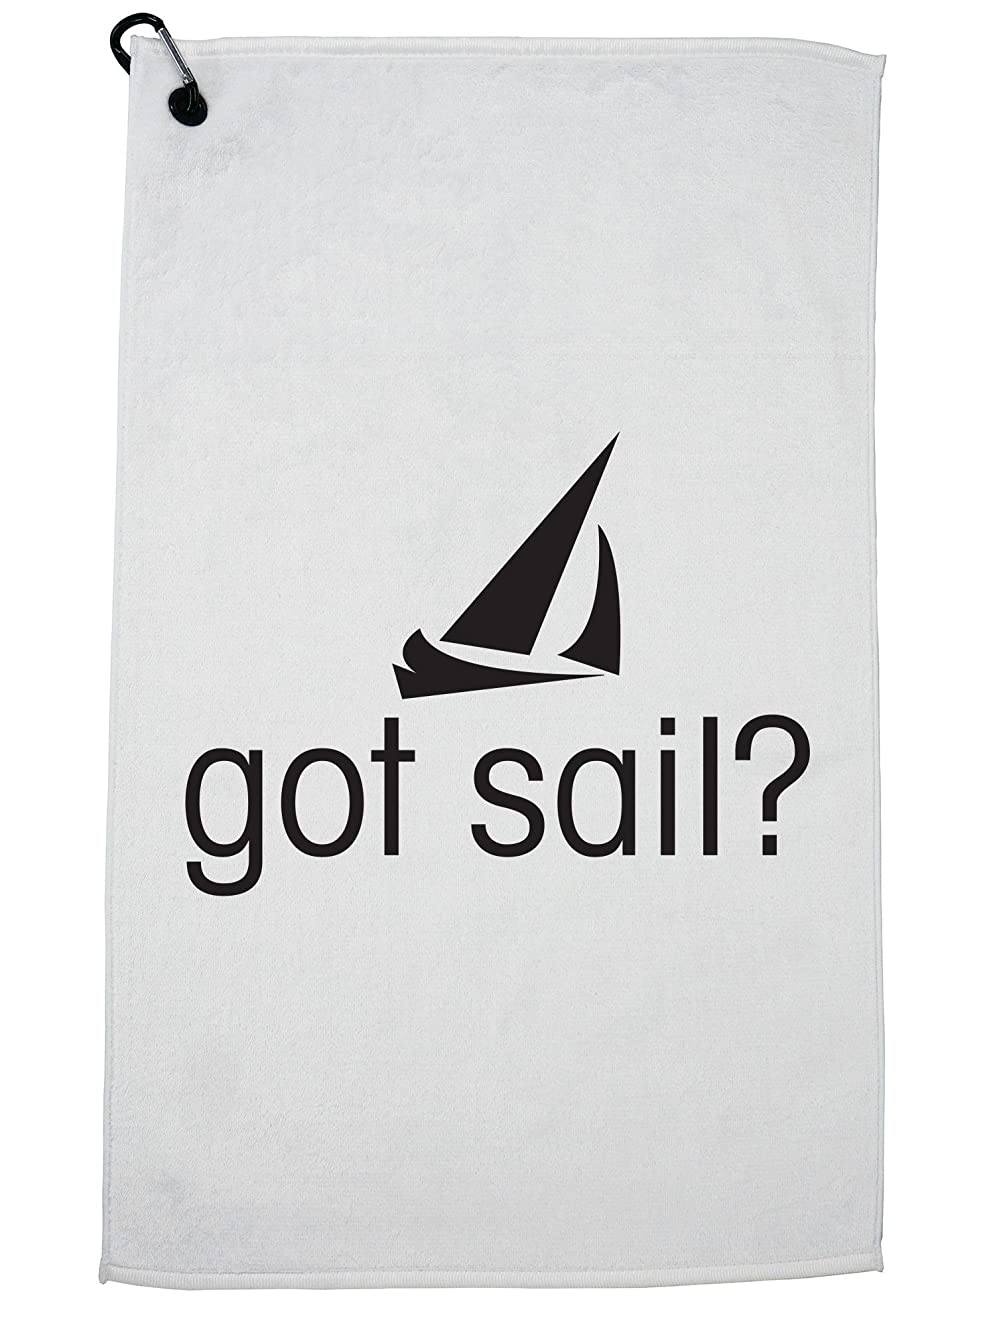 Hollywood Thread Hilarious Iconic Got Sail? Graphic Design Golf Towel with Carabiner Clip